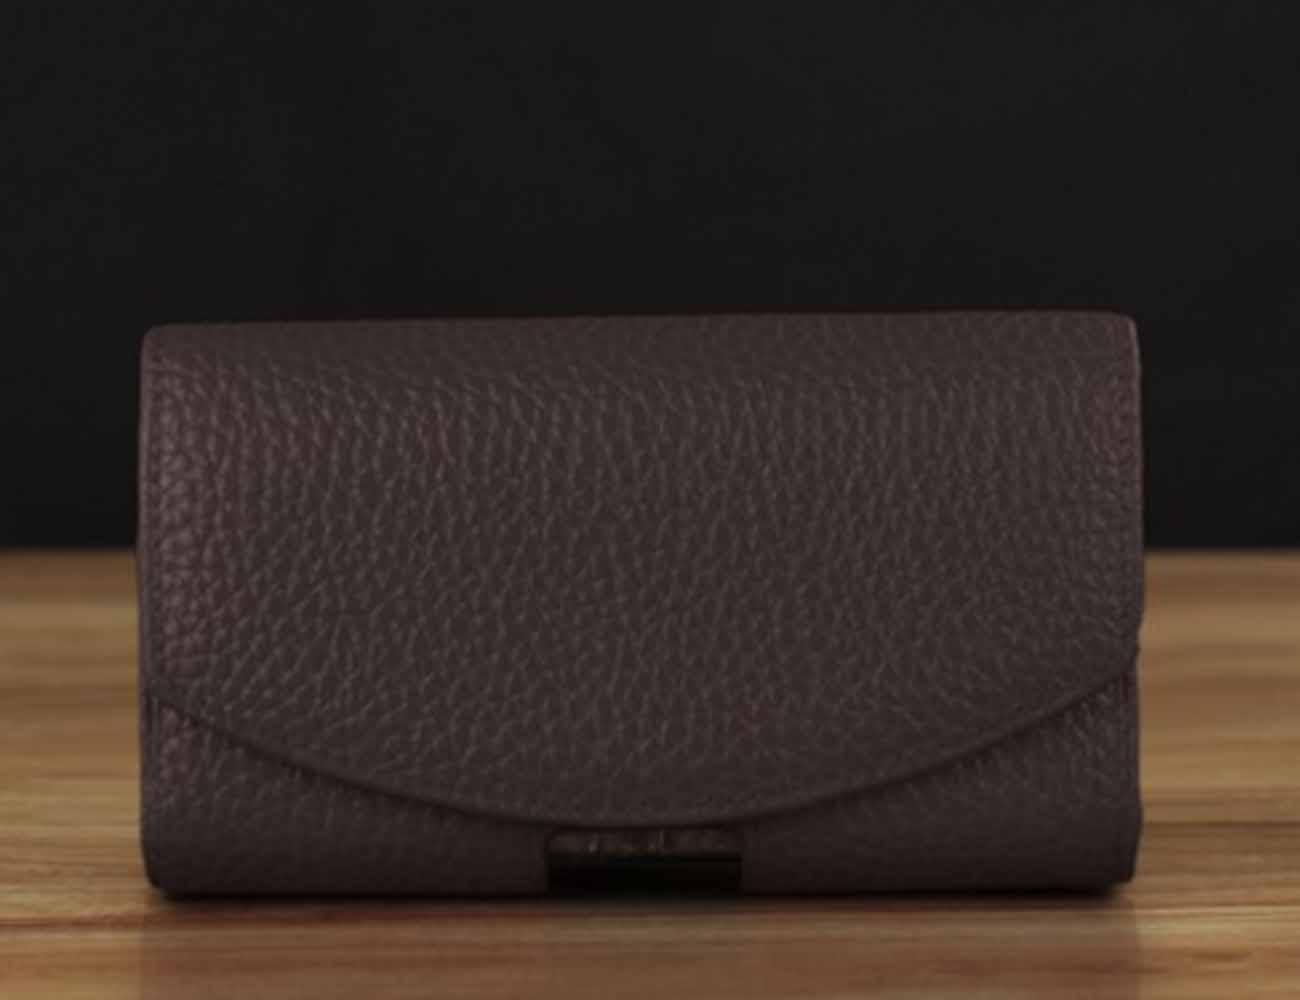 Double Decker – Custom Made Genuine Leather Holster for 2 Phones